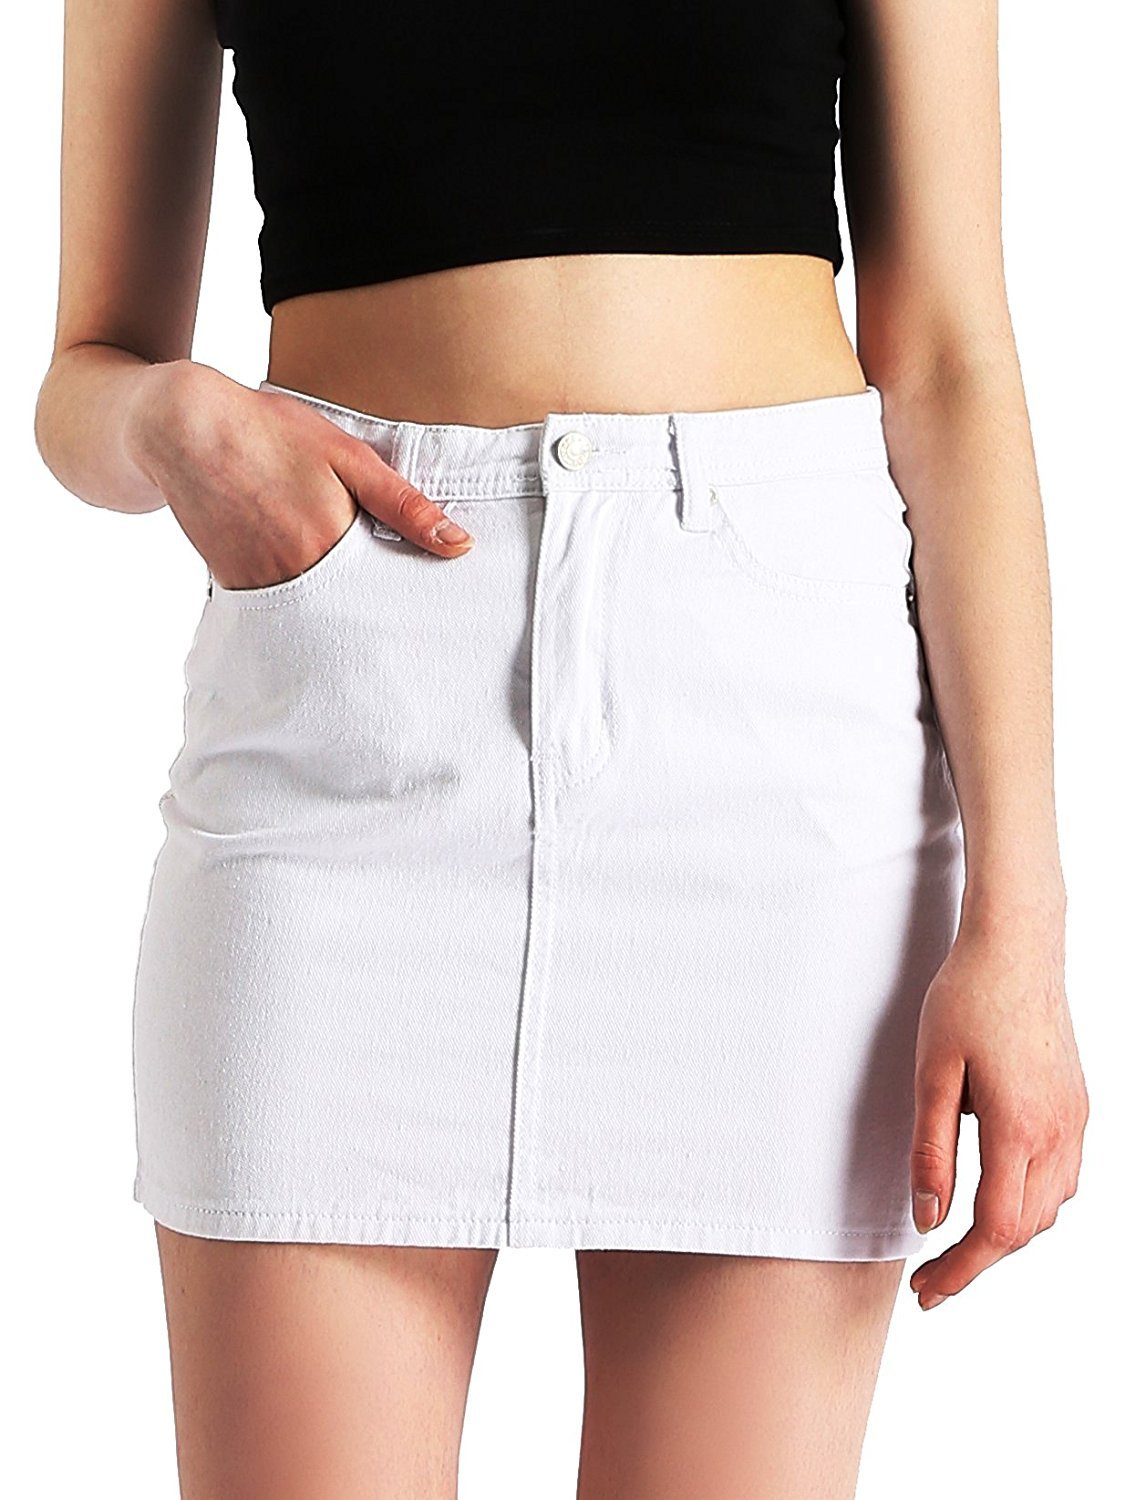 Beluring High Waist Bodycon Pencil Short Jean Skirts for Women Size US 4 White